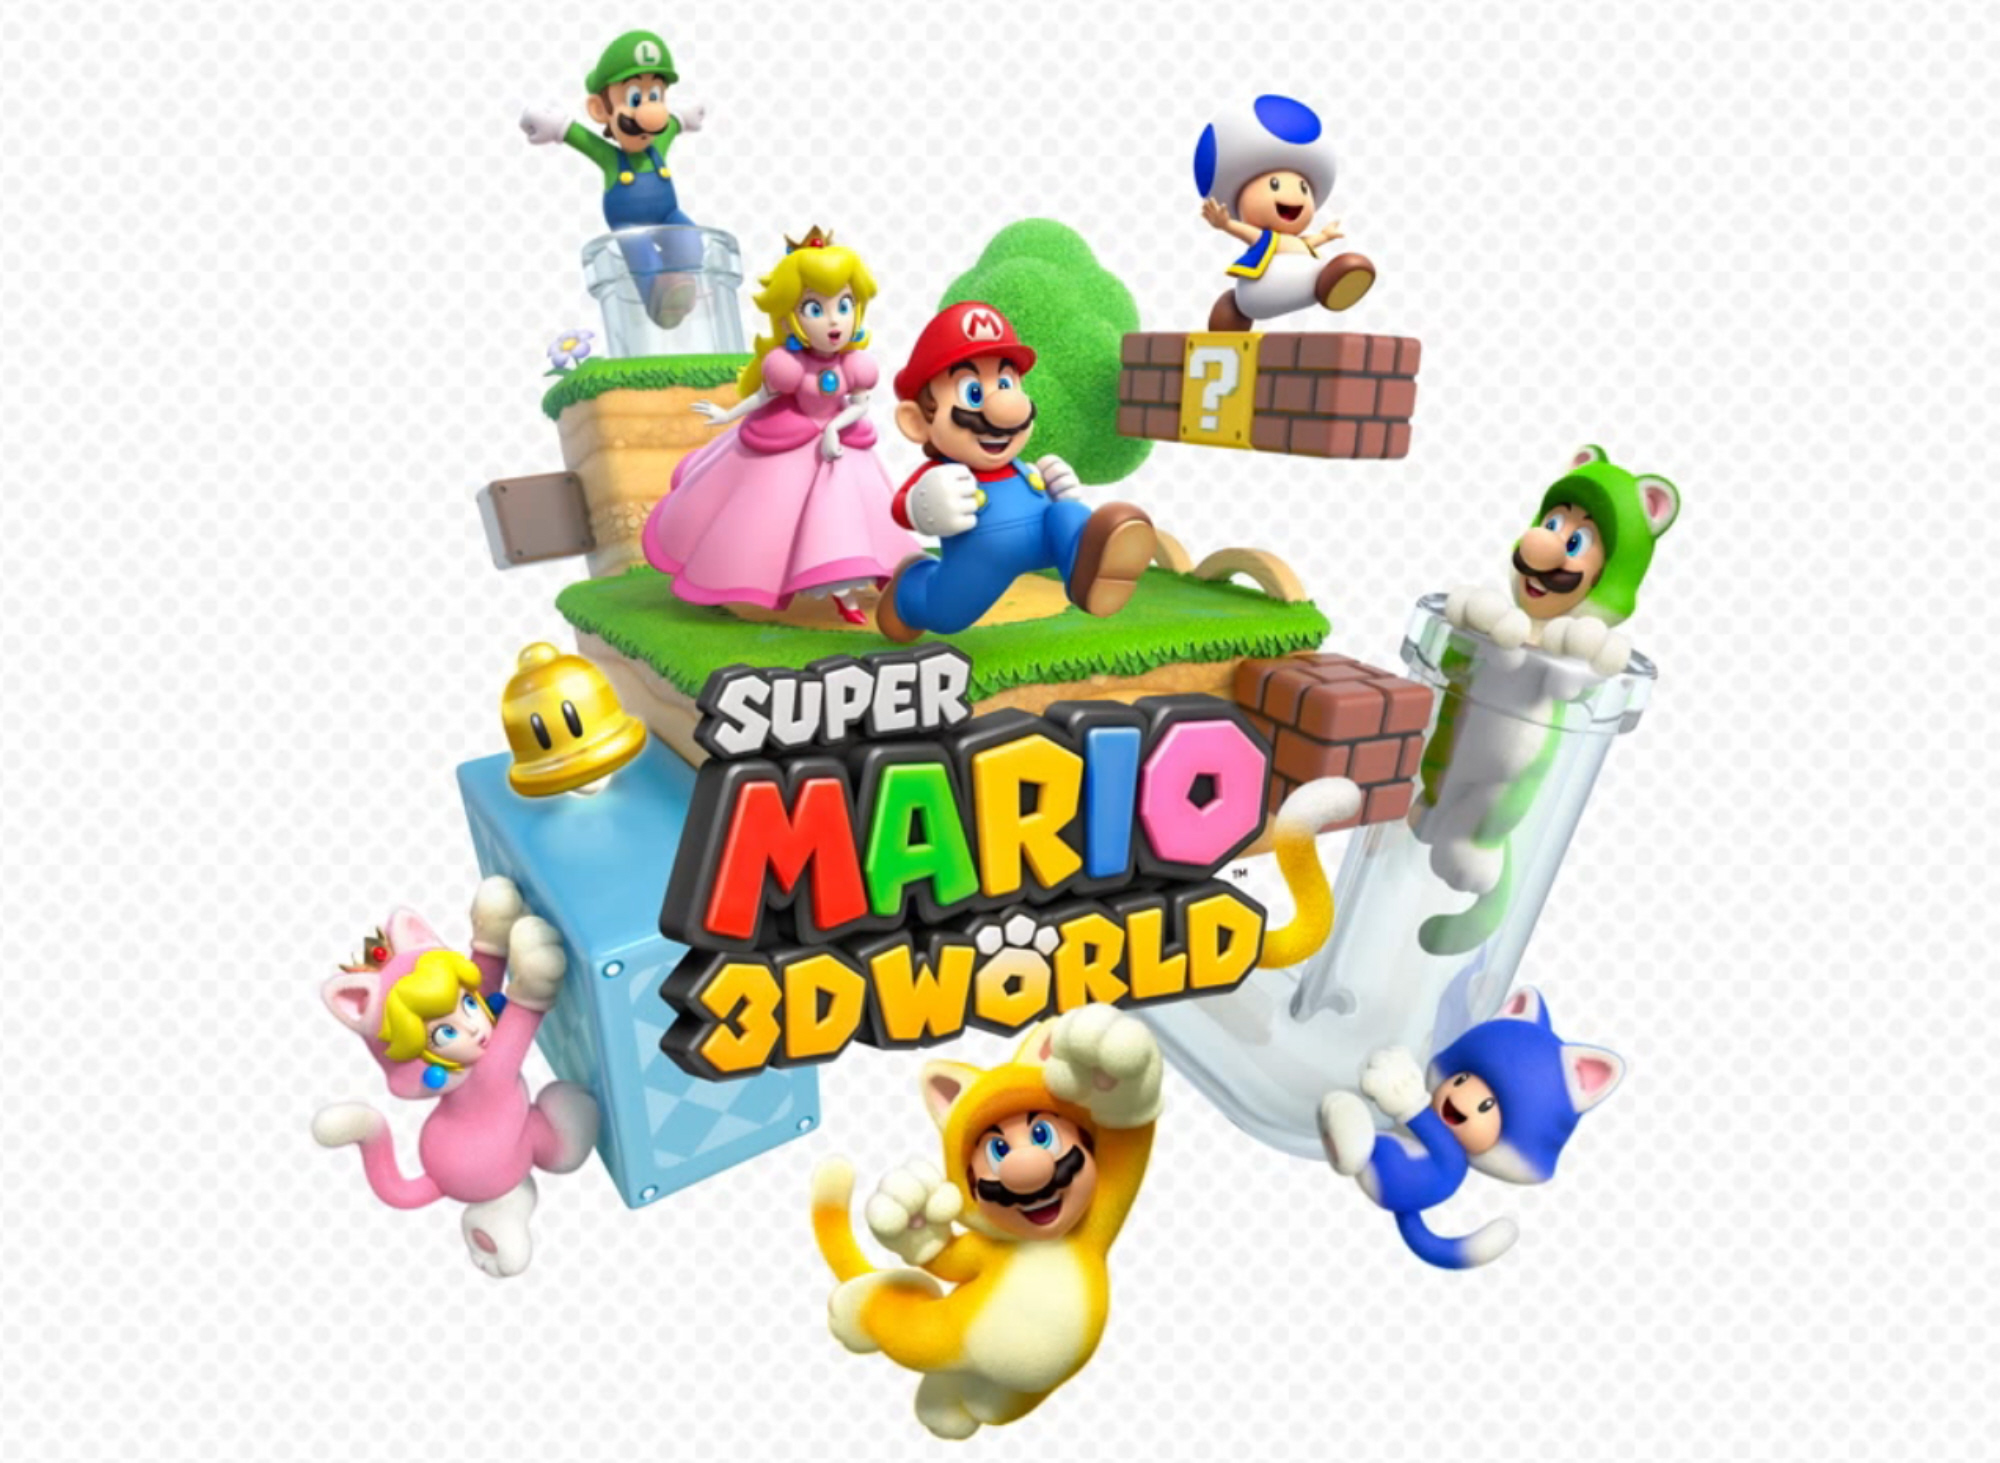 Super Mario 3D World Is New Non-Side-Scrolling Mario Game